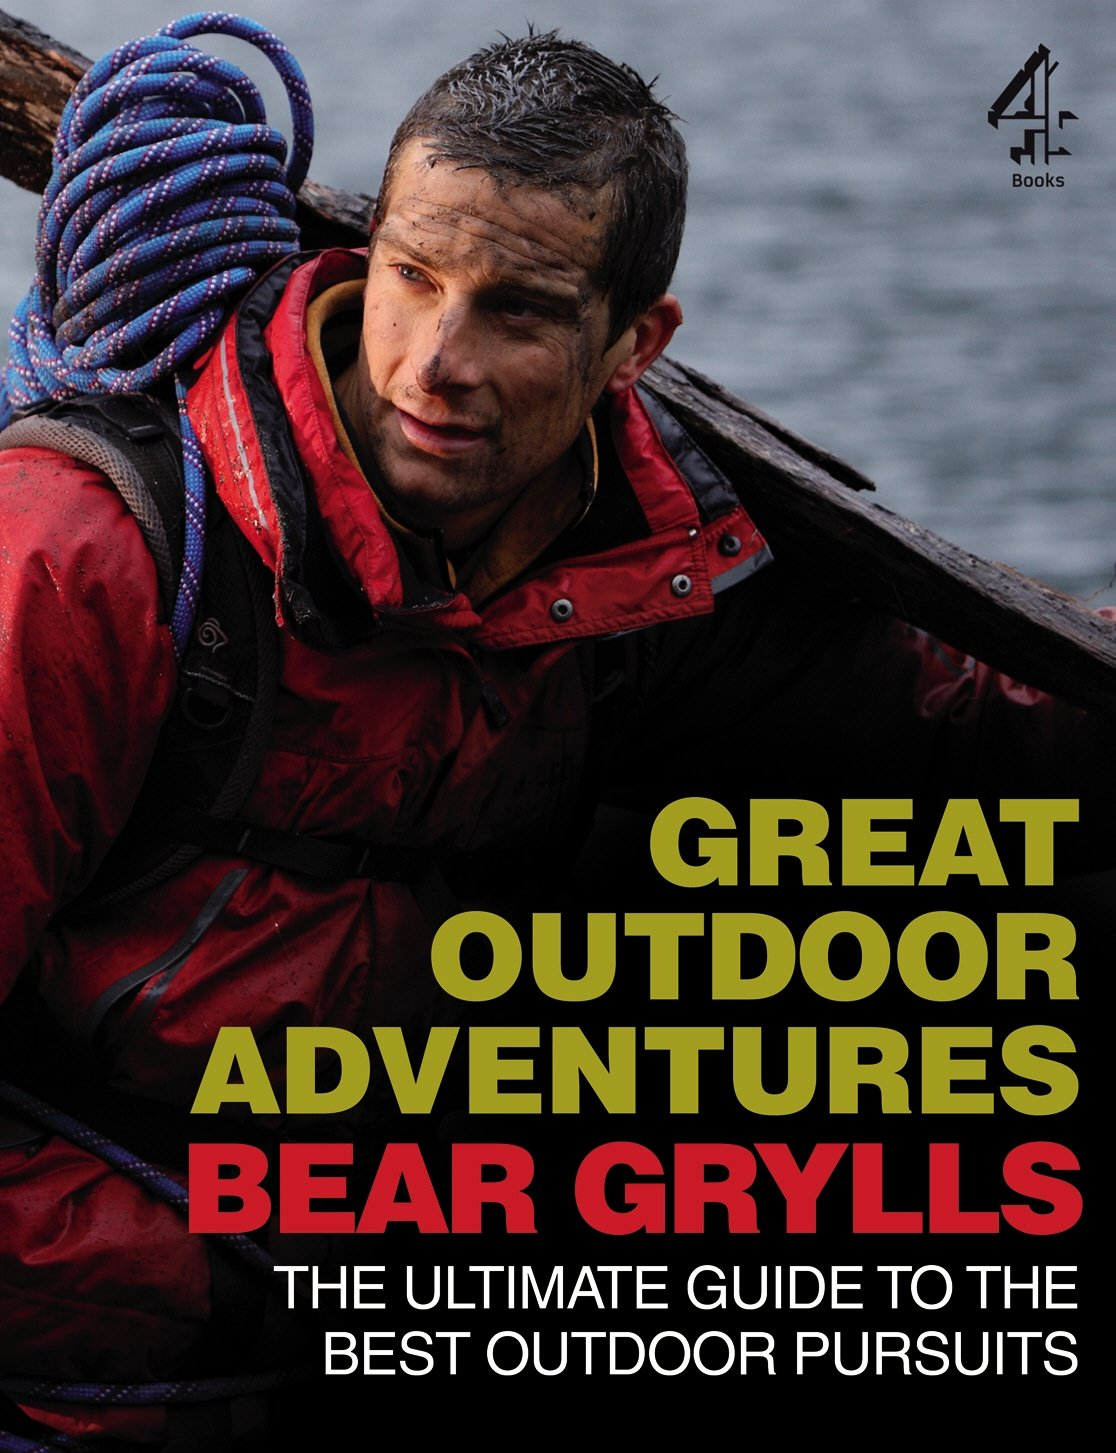 Great Outdoor Adventures: The Ultimate Guide to the Best Outdoor Pursuits PDF